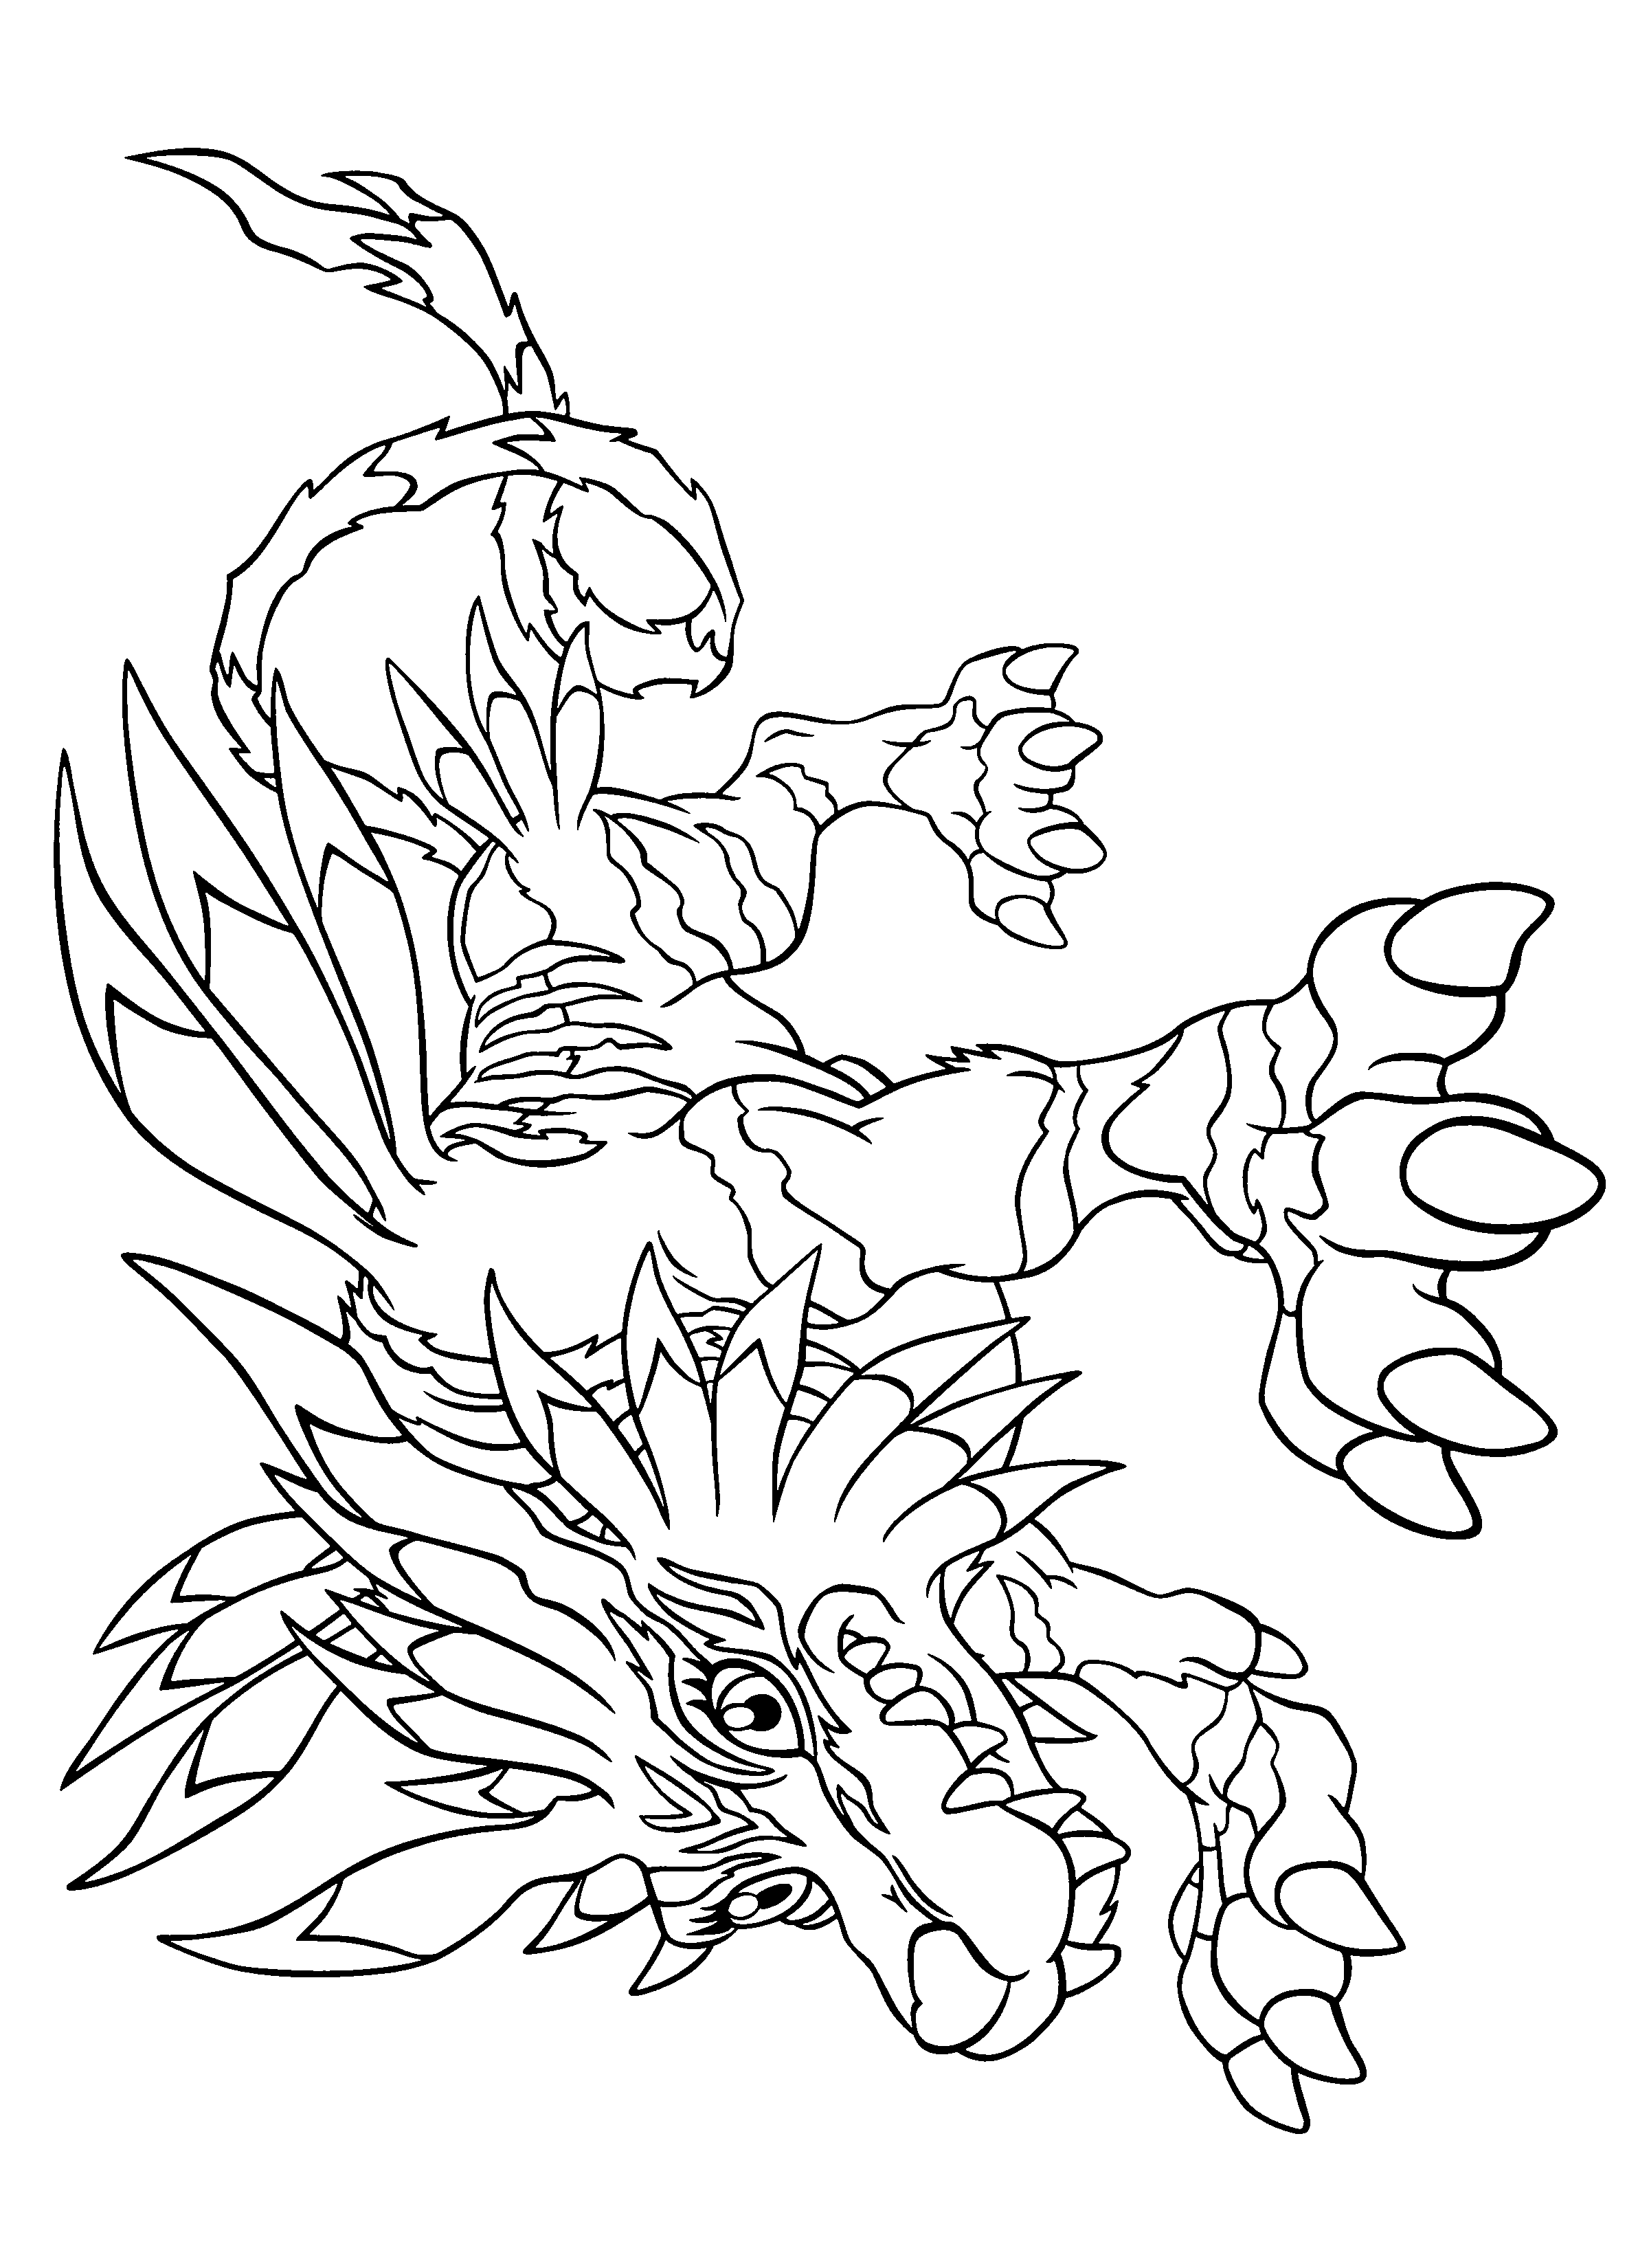 Angemon Coloring Pages Coloring Pages Digimon Coloring Pages